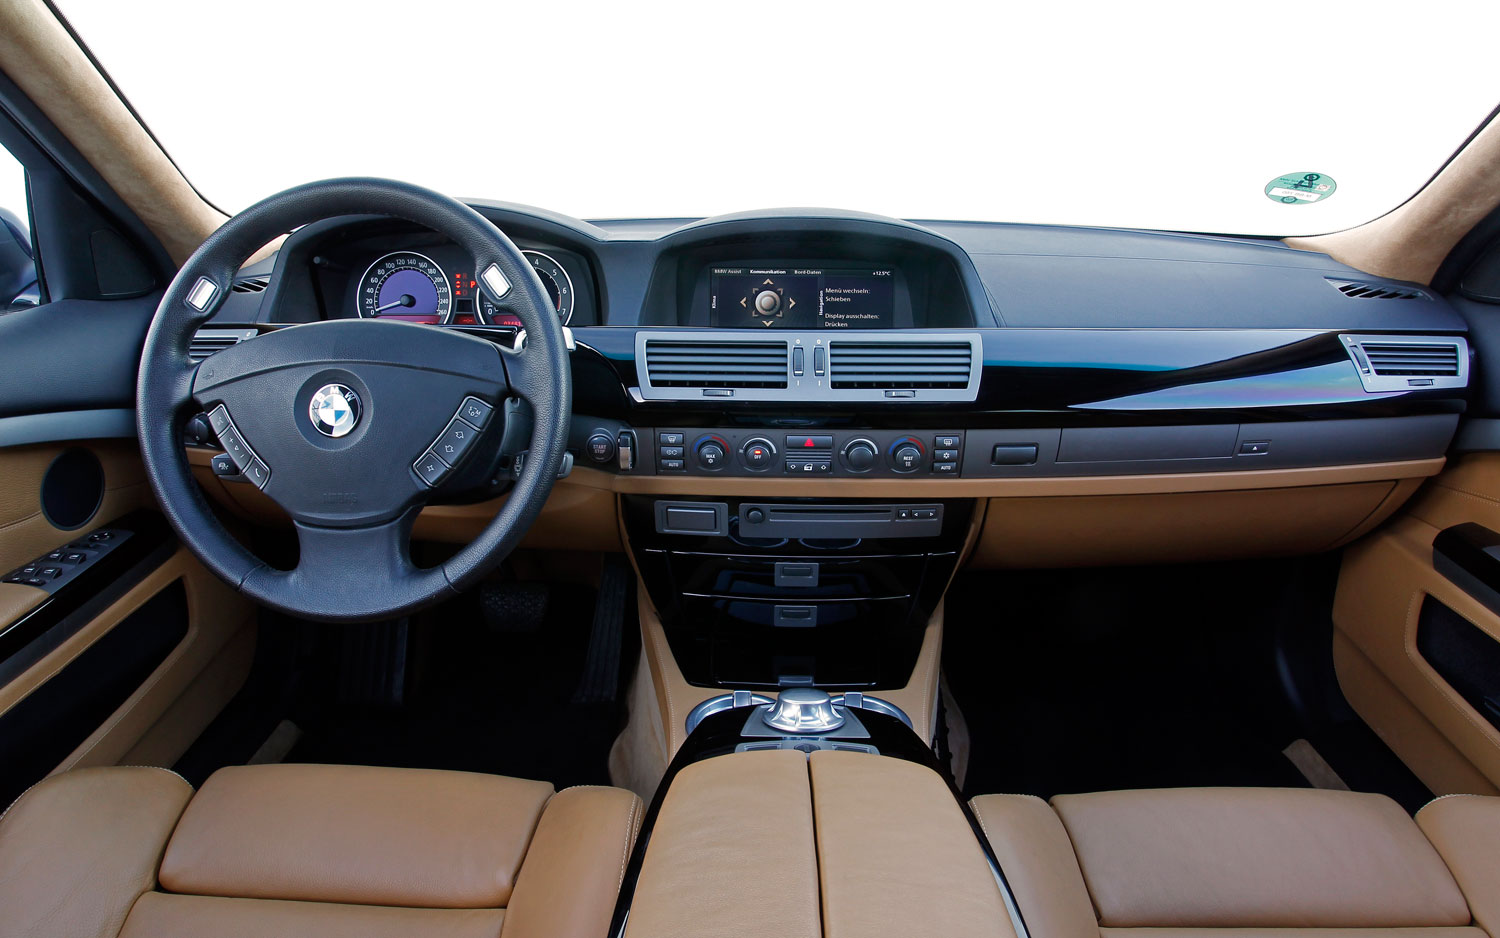 BMW 7 Series Focuses On Tech